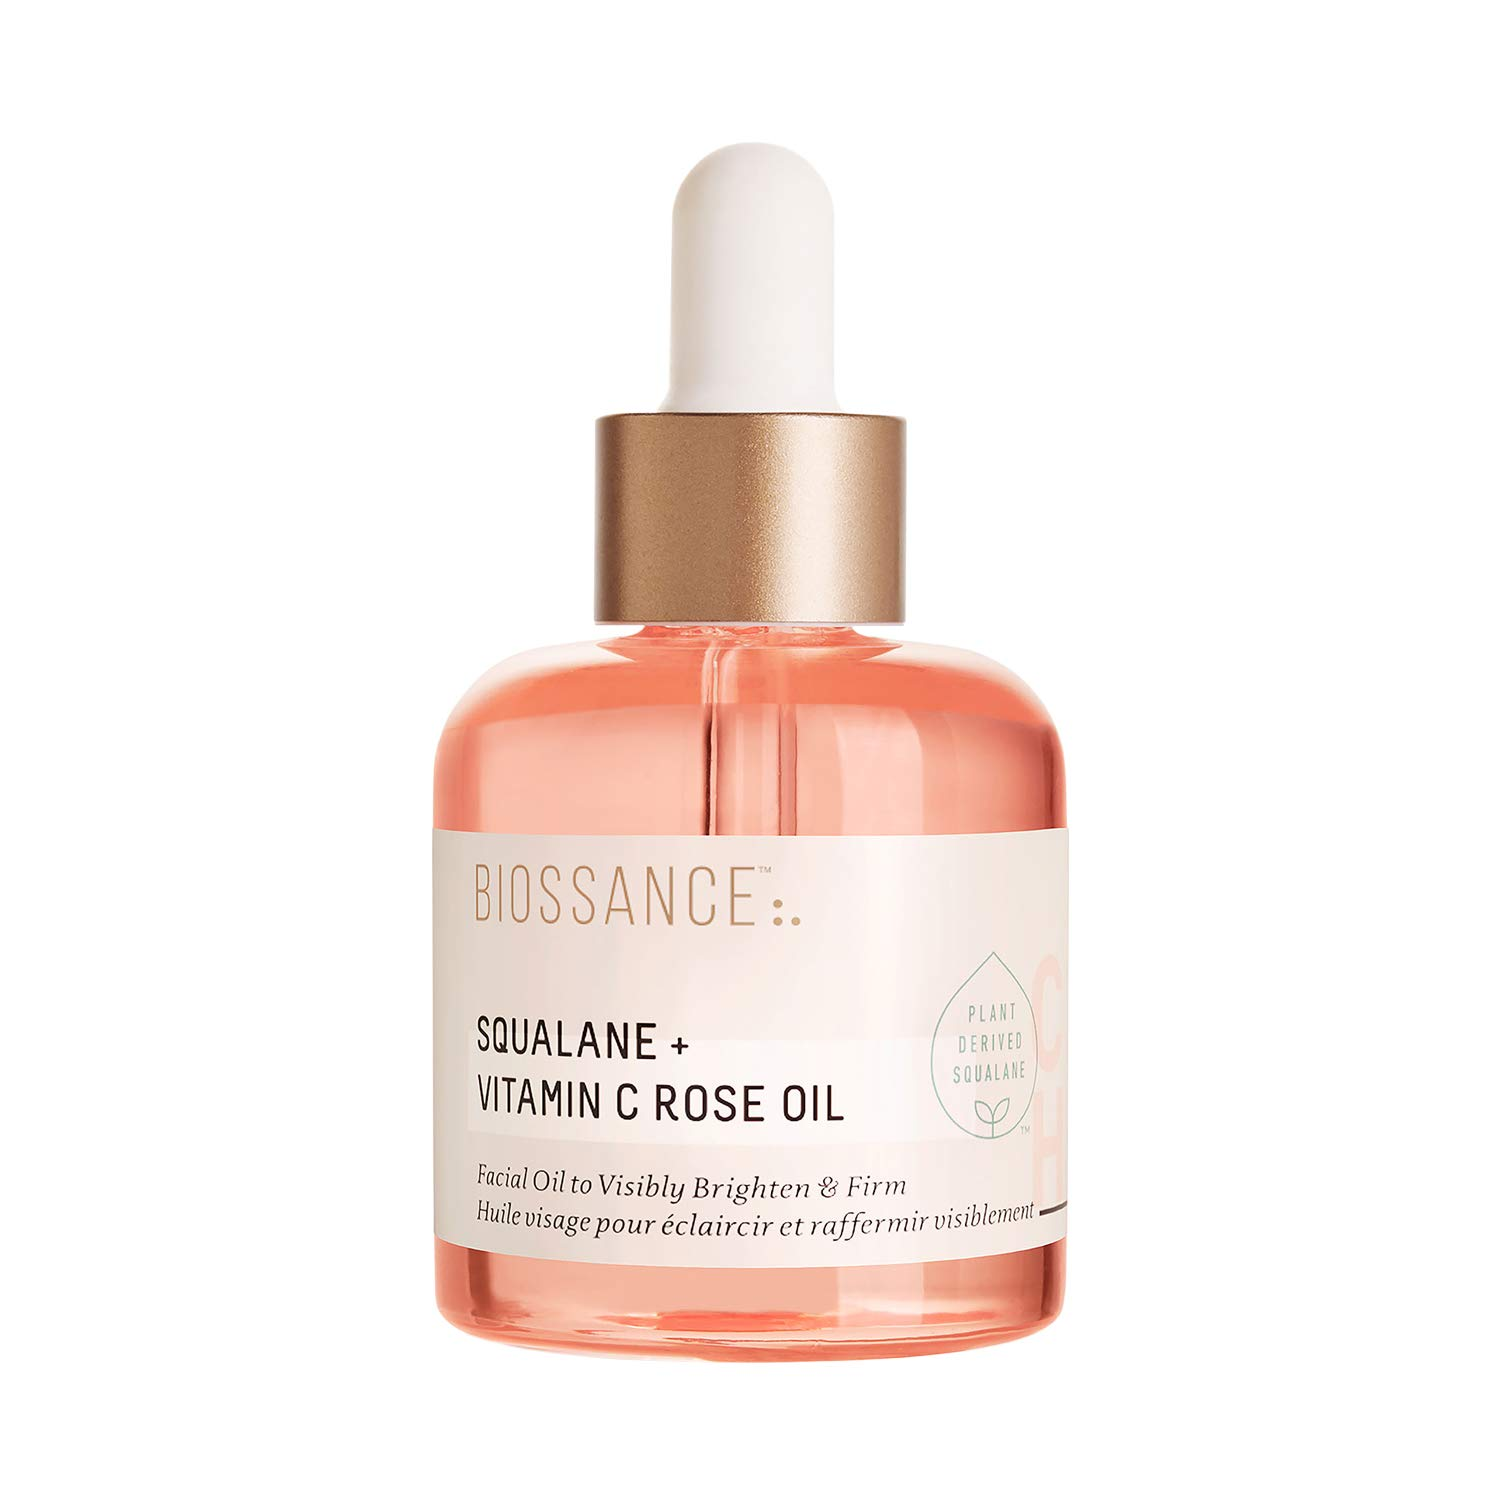 5. Biossance Squalane + Vitamin C Rose Oil | With Love, Vienna Lyn